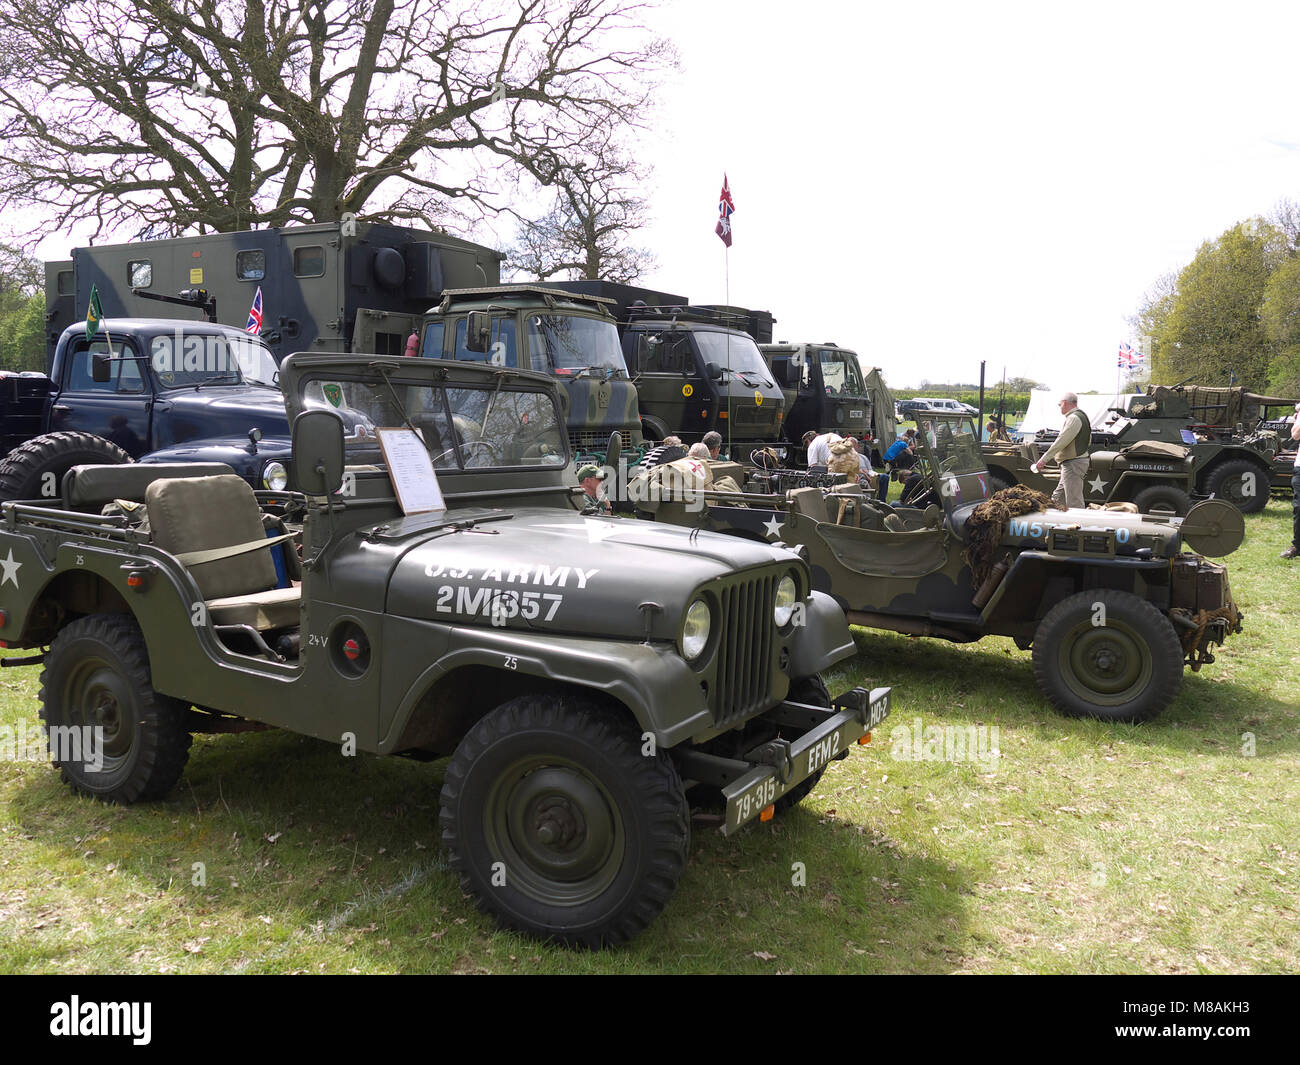 Vintage Military vehicles on display at Stradsett steam and vintage rally, Norfolk - Stock Image